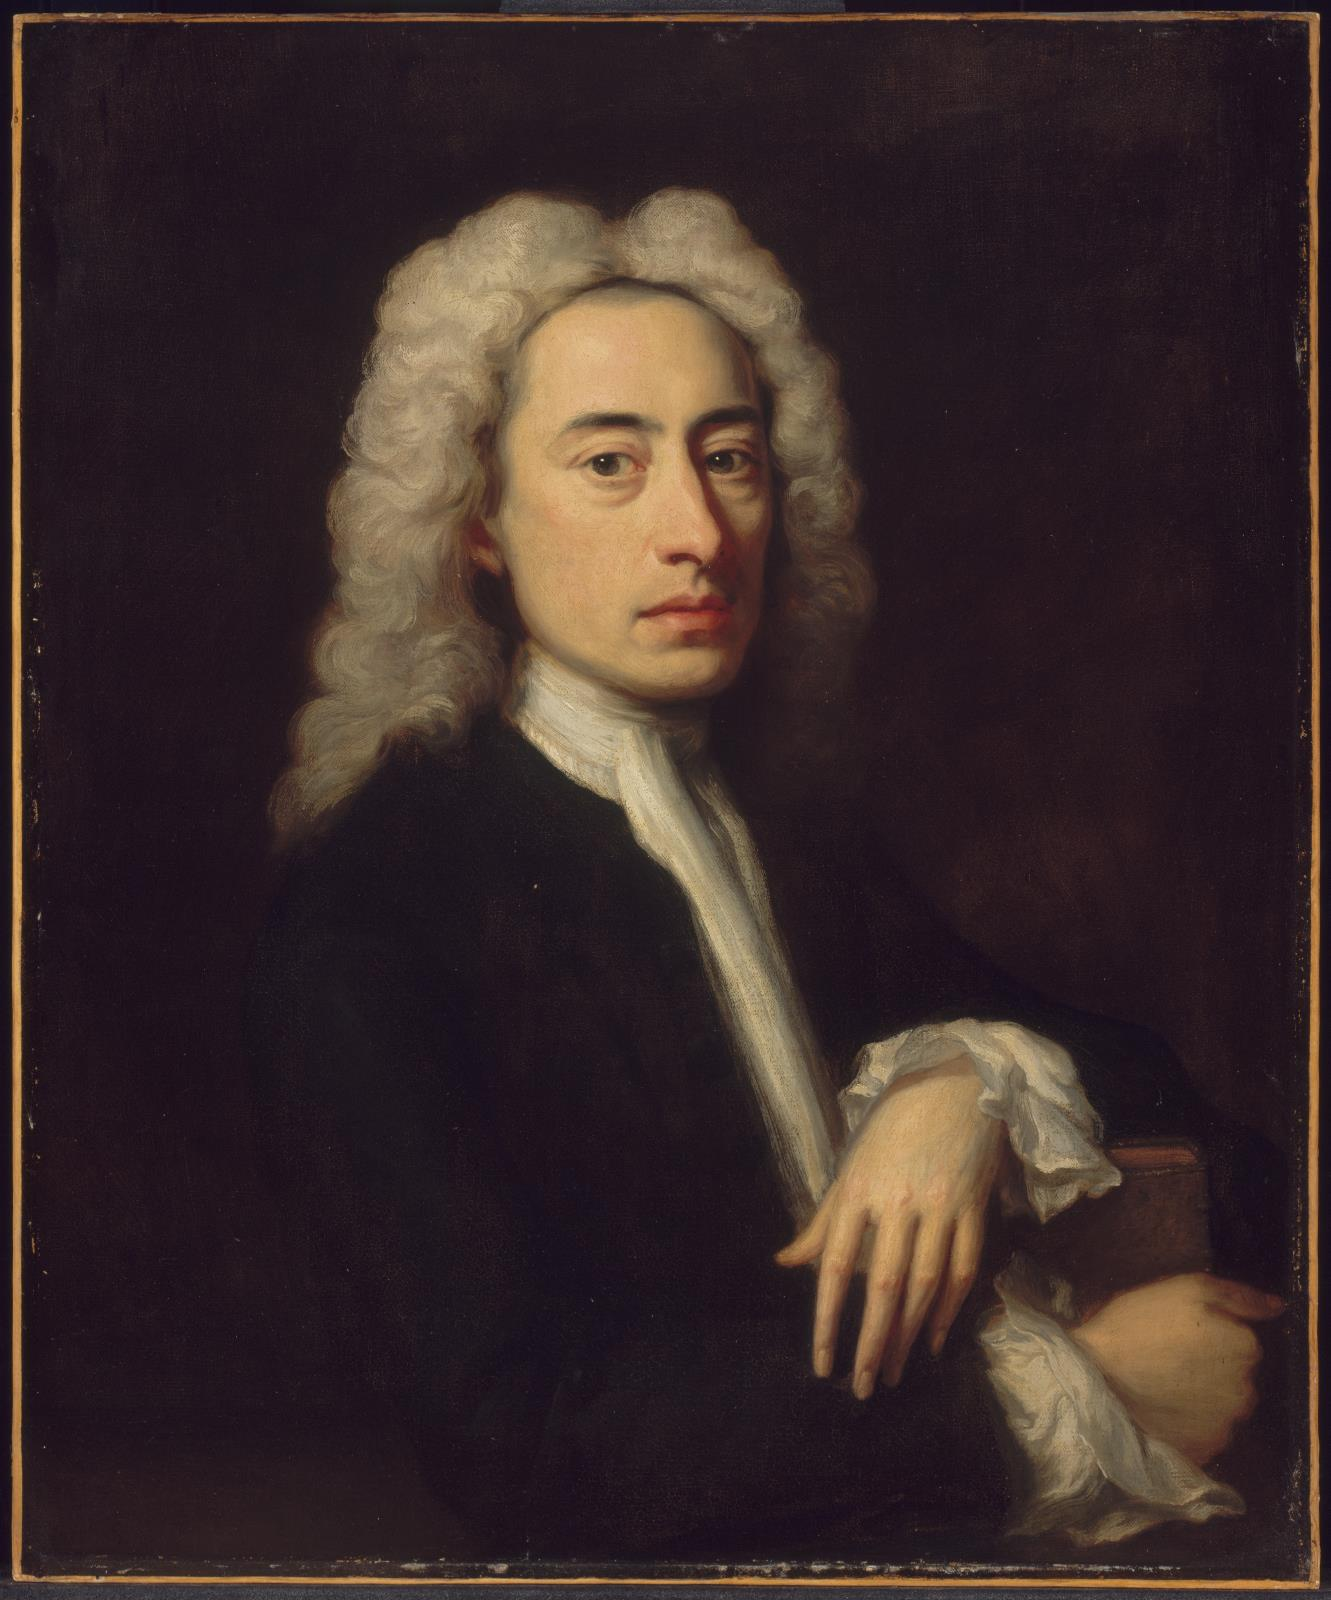 File:Alexander Pope circa 1736.jpeg